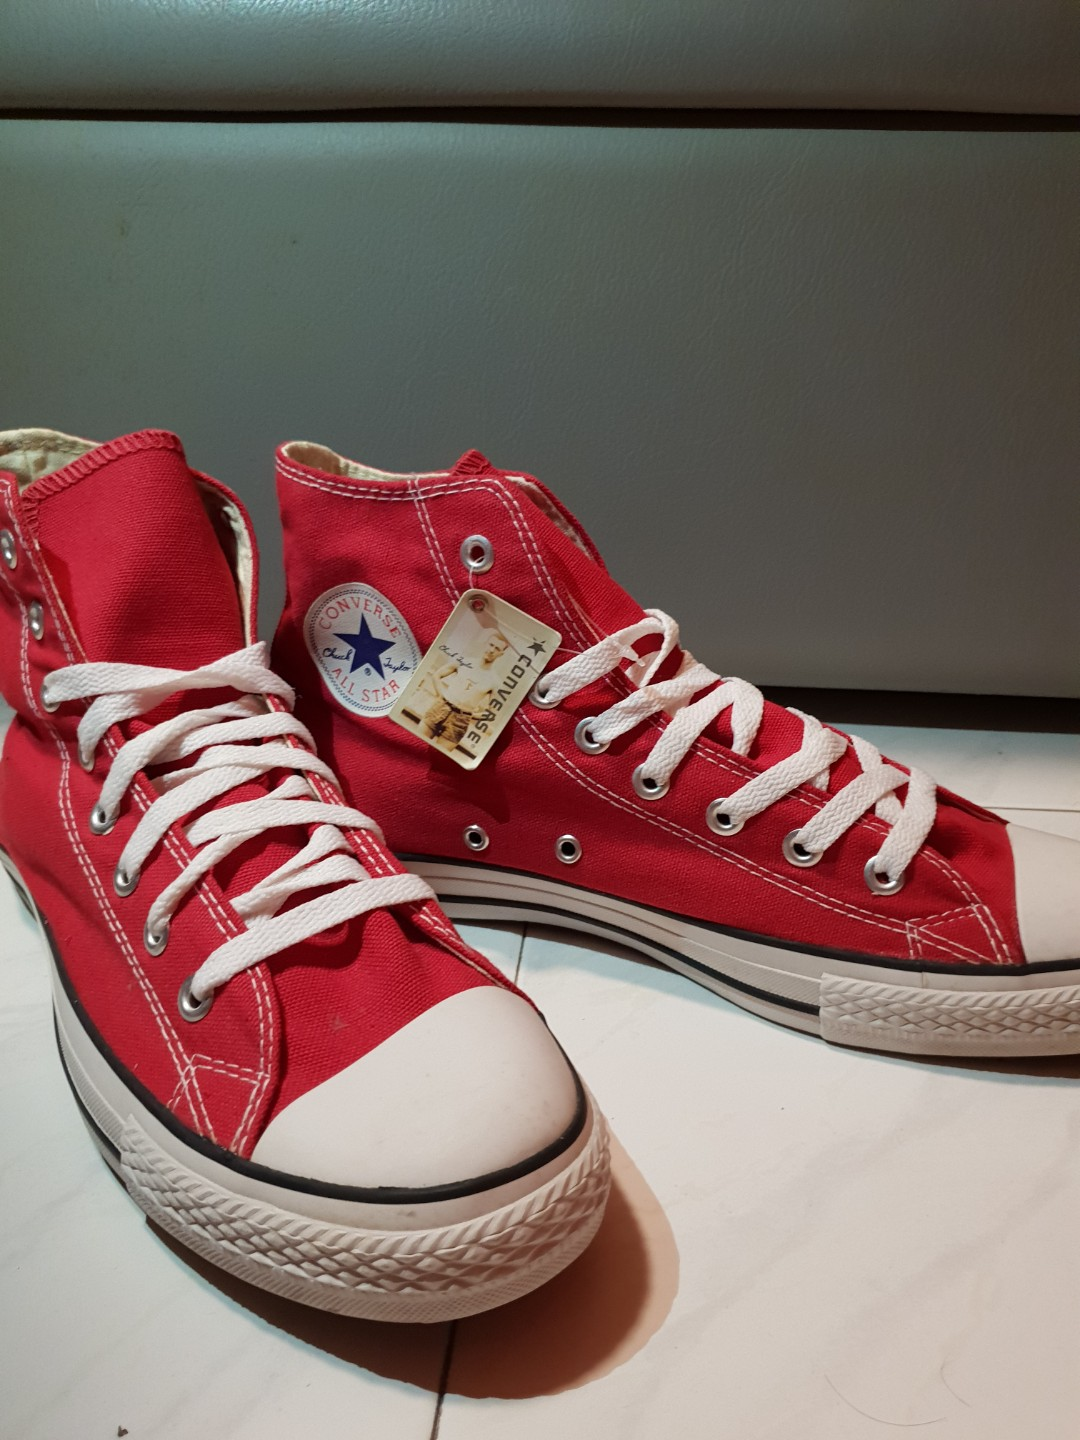 30f4481af3d Converse All Star High-cut Sneakers